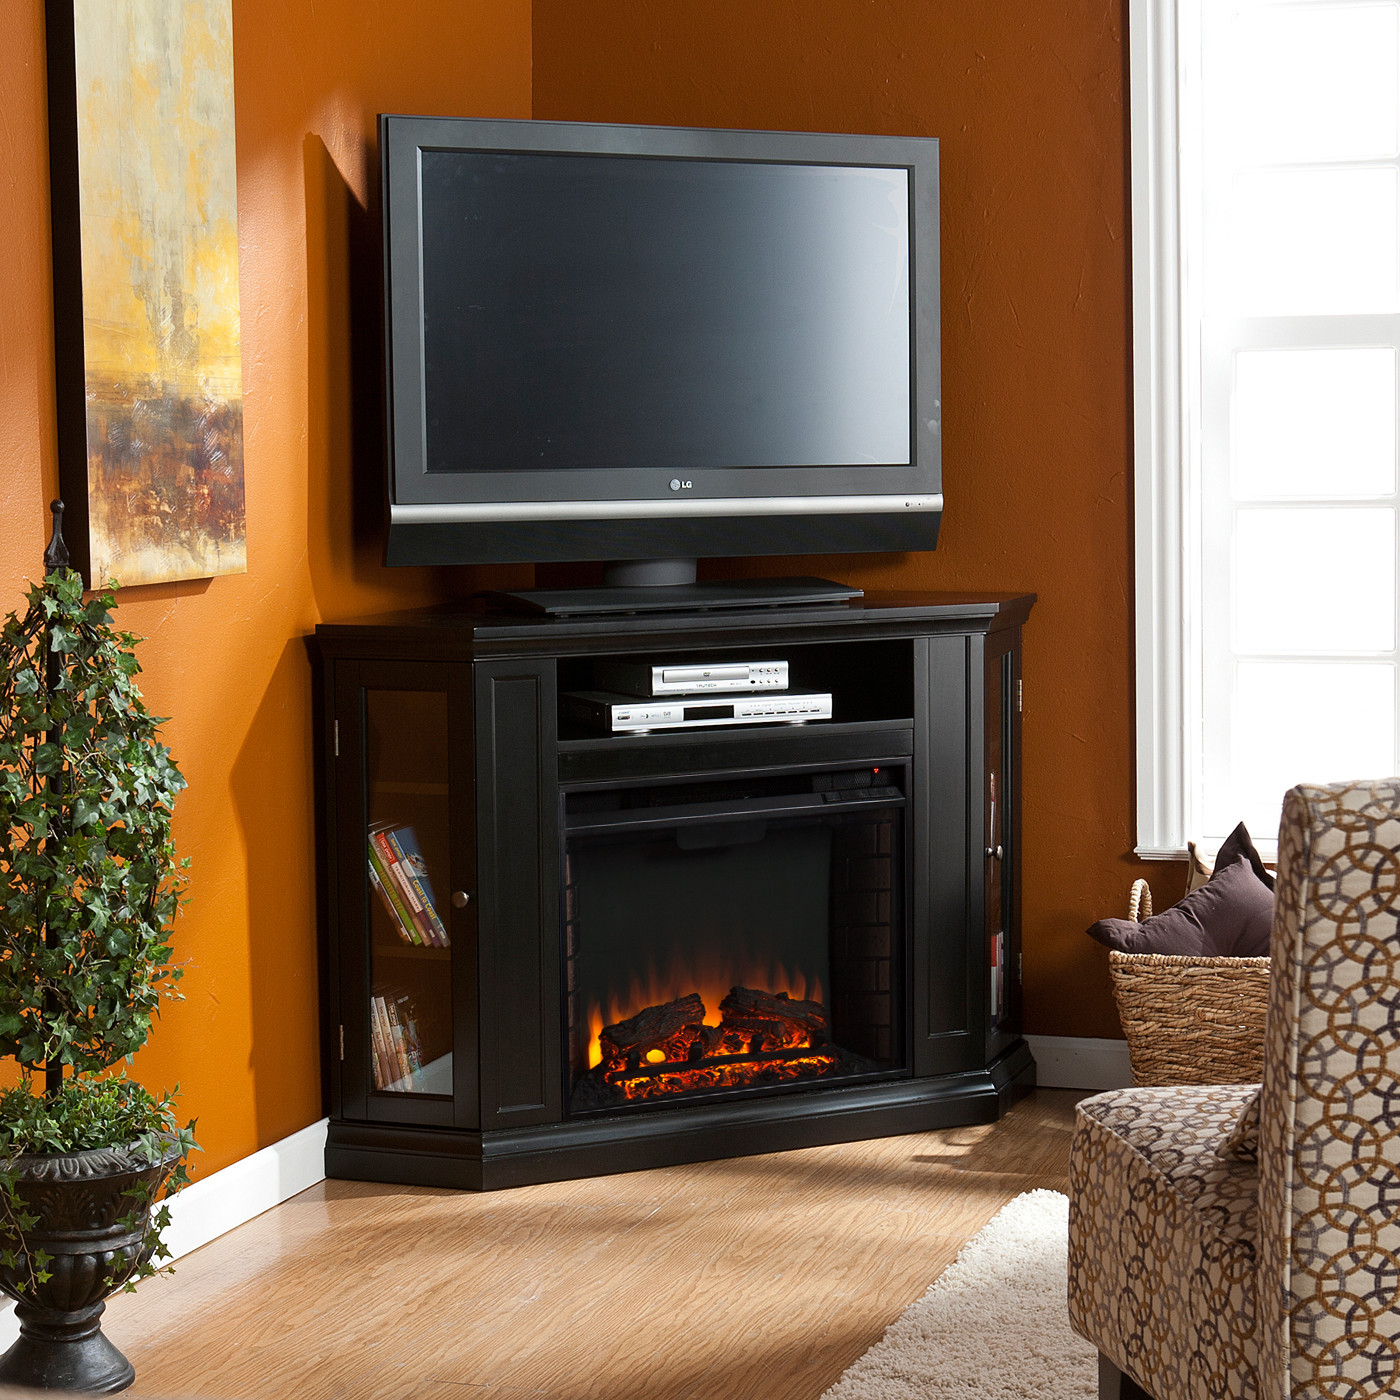 Lowes Fireplace Surrounds | Home Depot Fireplace Surrounds | Lowes Fireplace Mantel